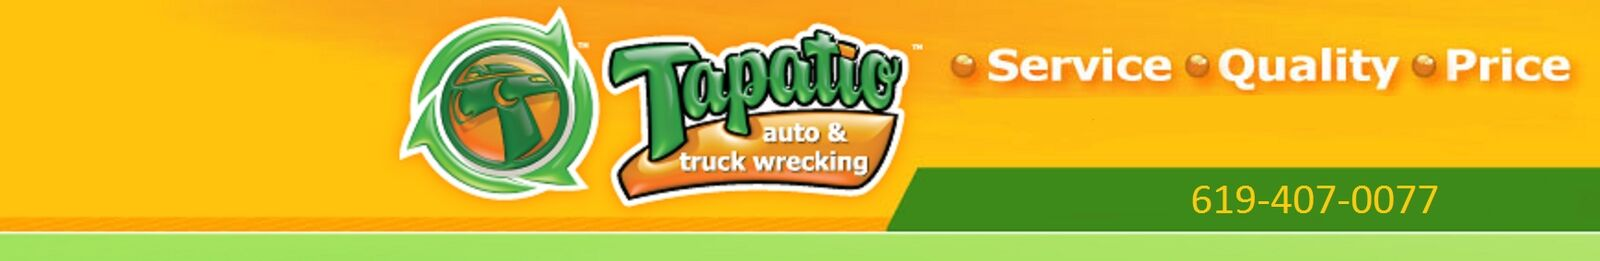 Tapatio auto & truck wrecking